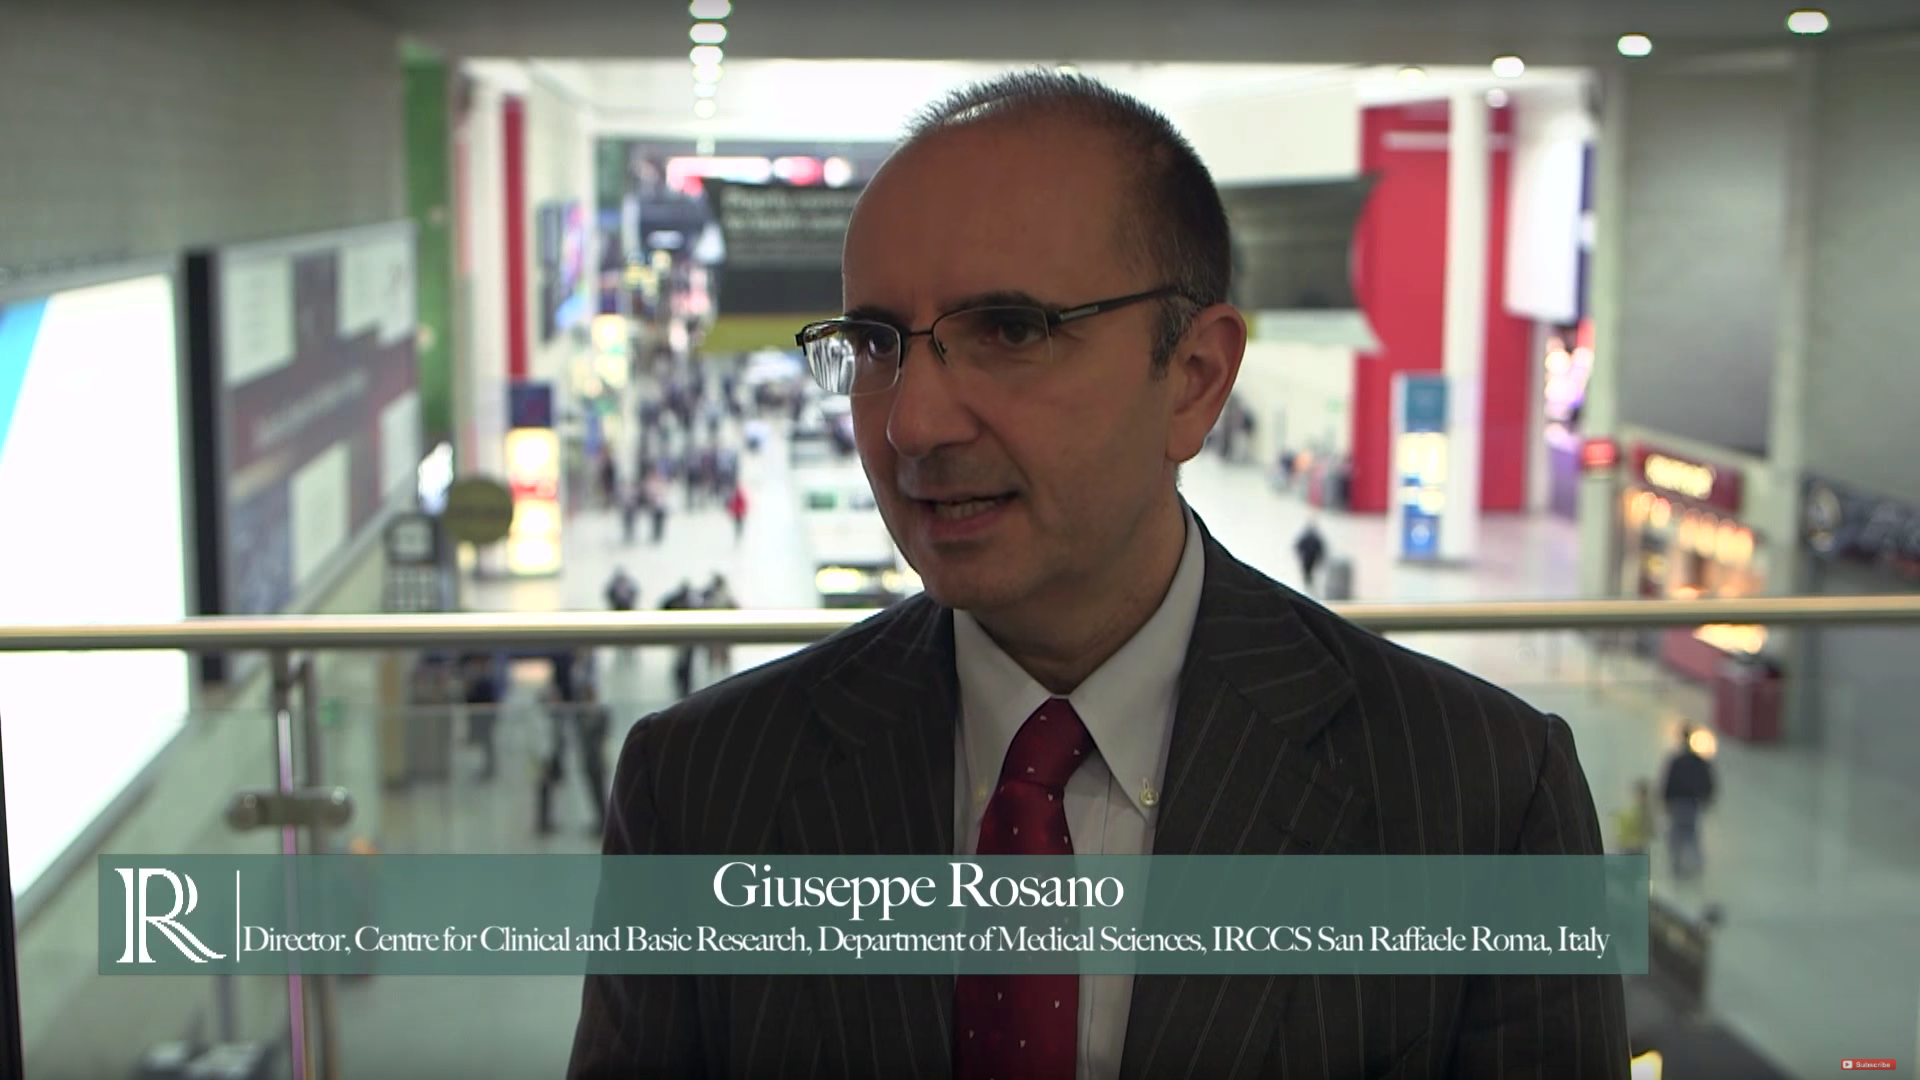 ESC 2015: True Advances In The Treatment Of Heart Failure with Professor Giuseppe Rosano